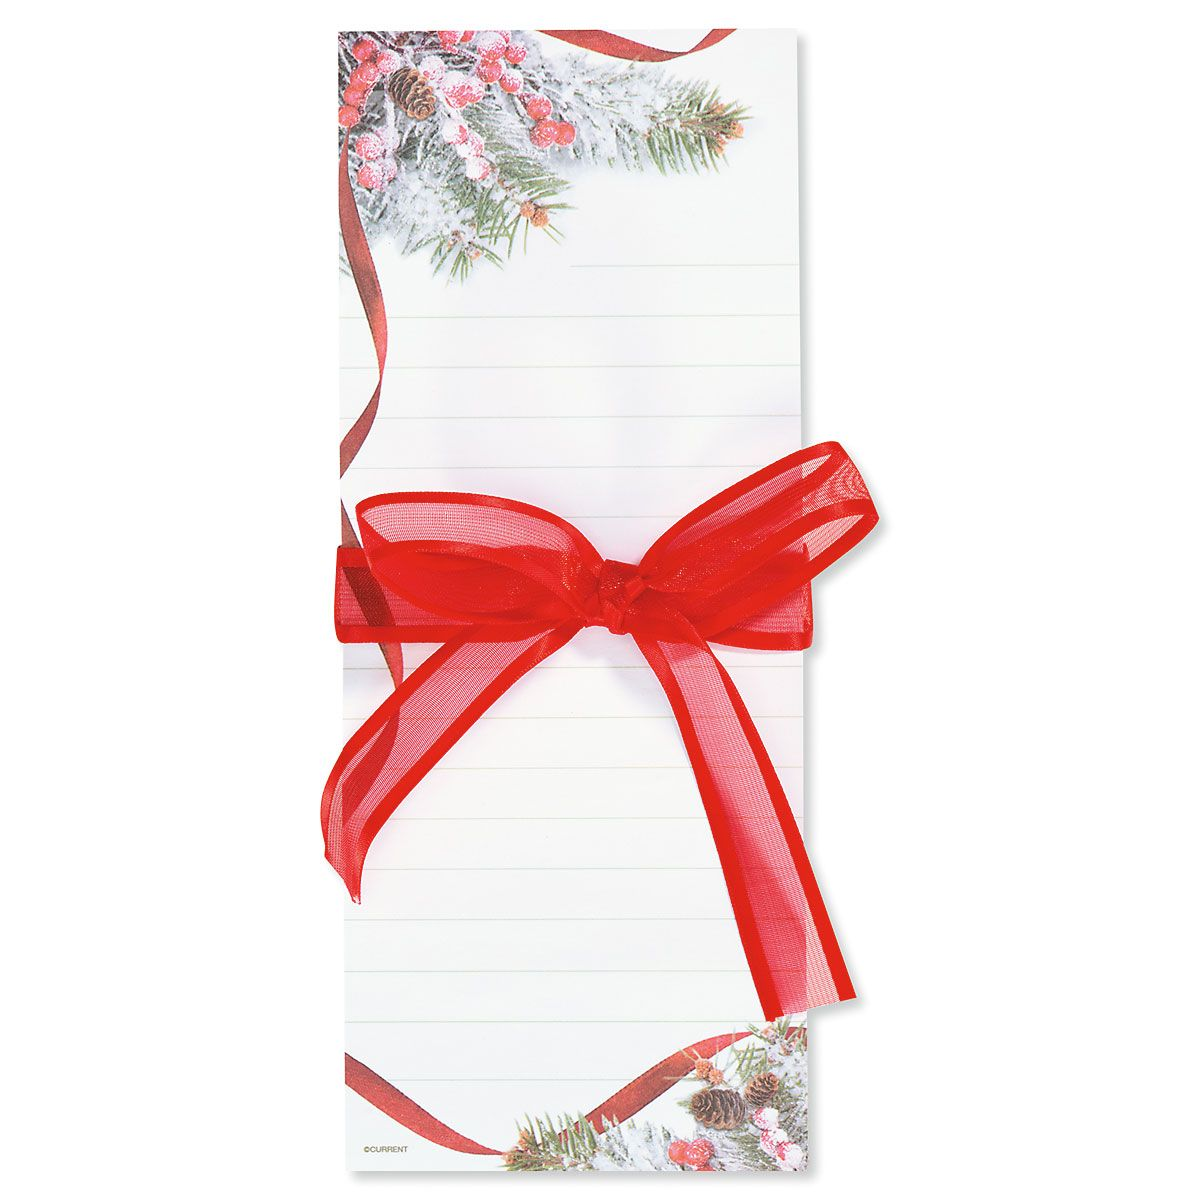 Snowy Pine List Pads with Ribbon - Buy 1 Get 1 Free